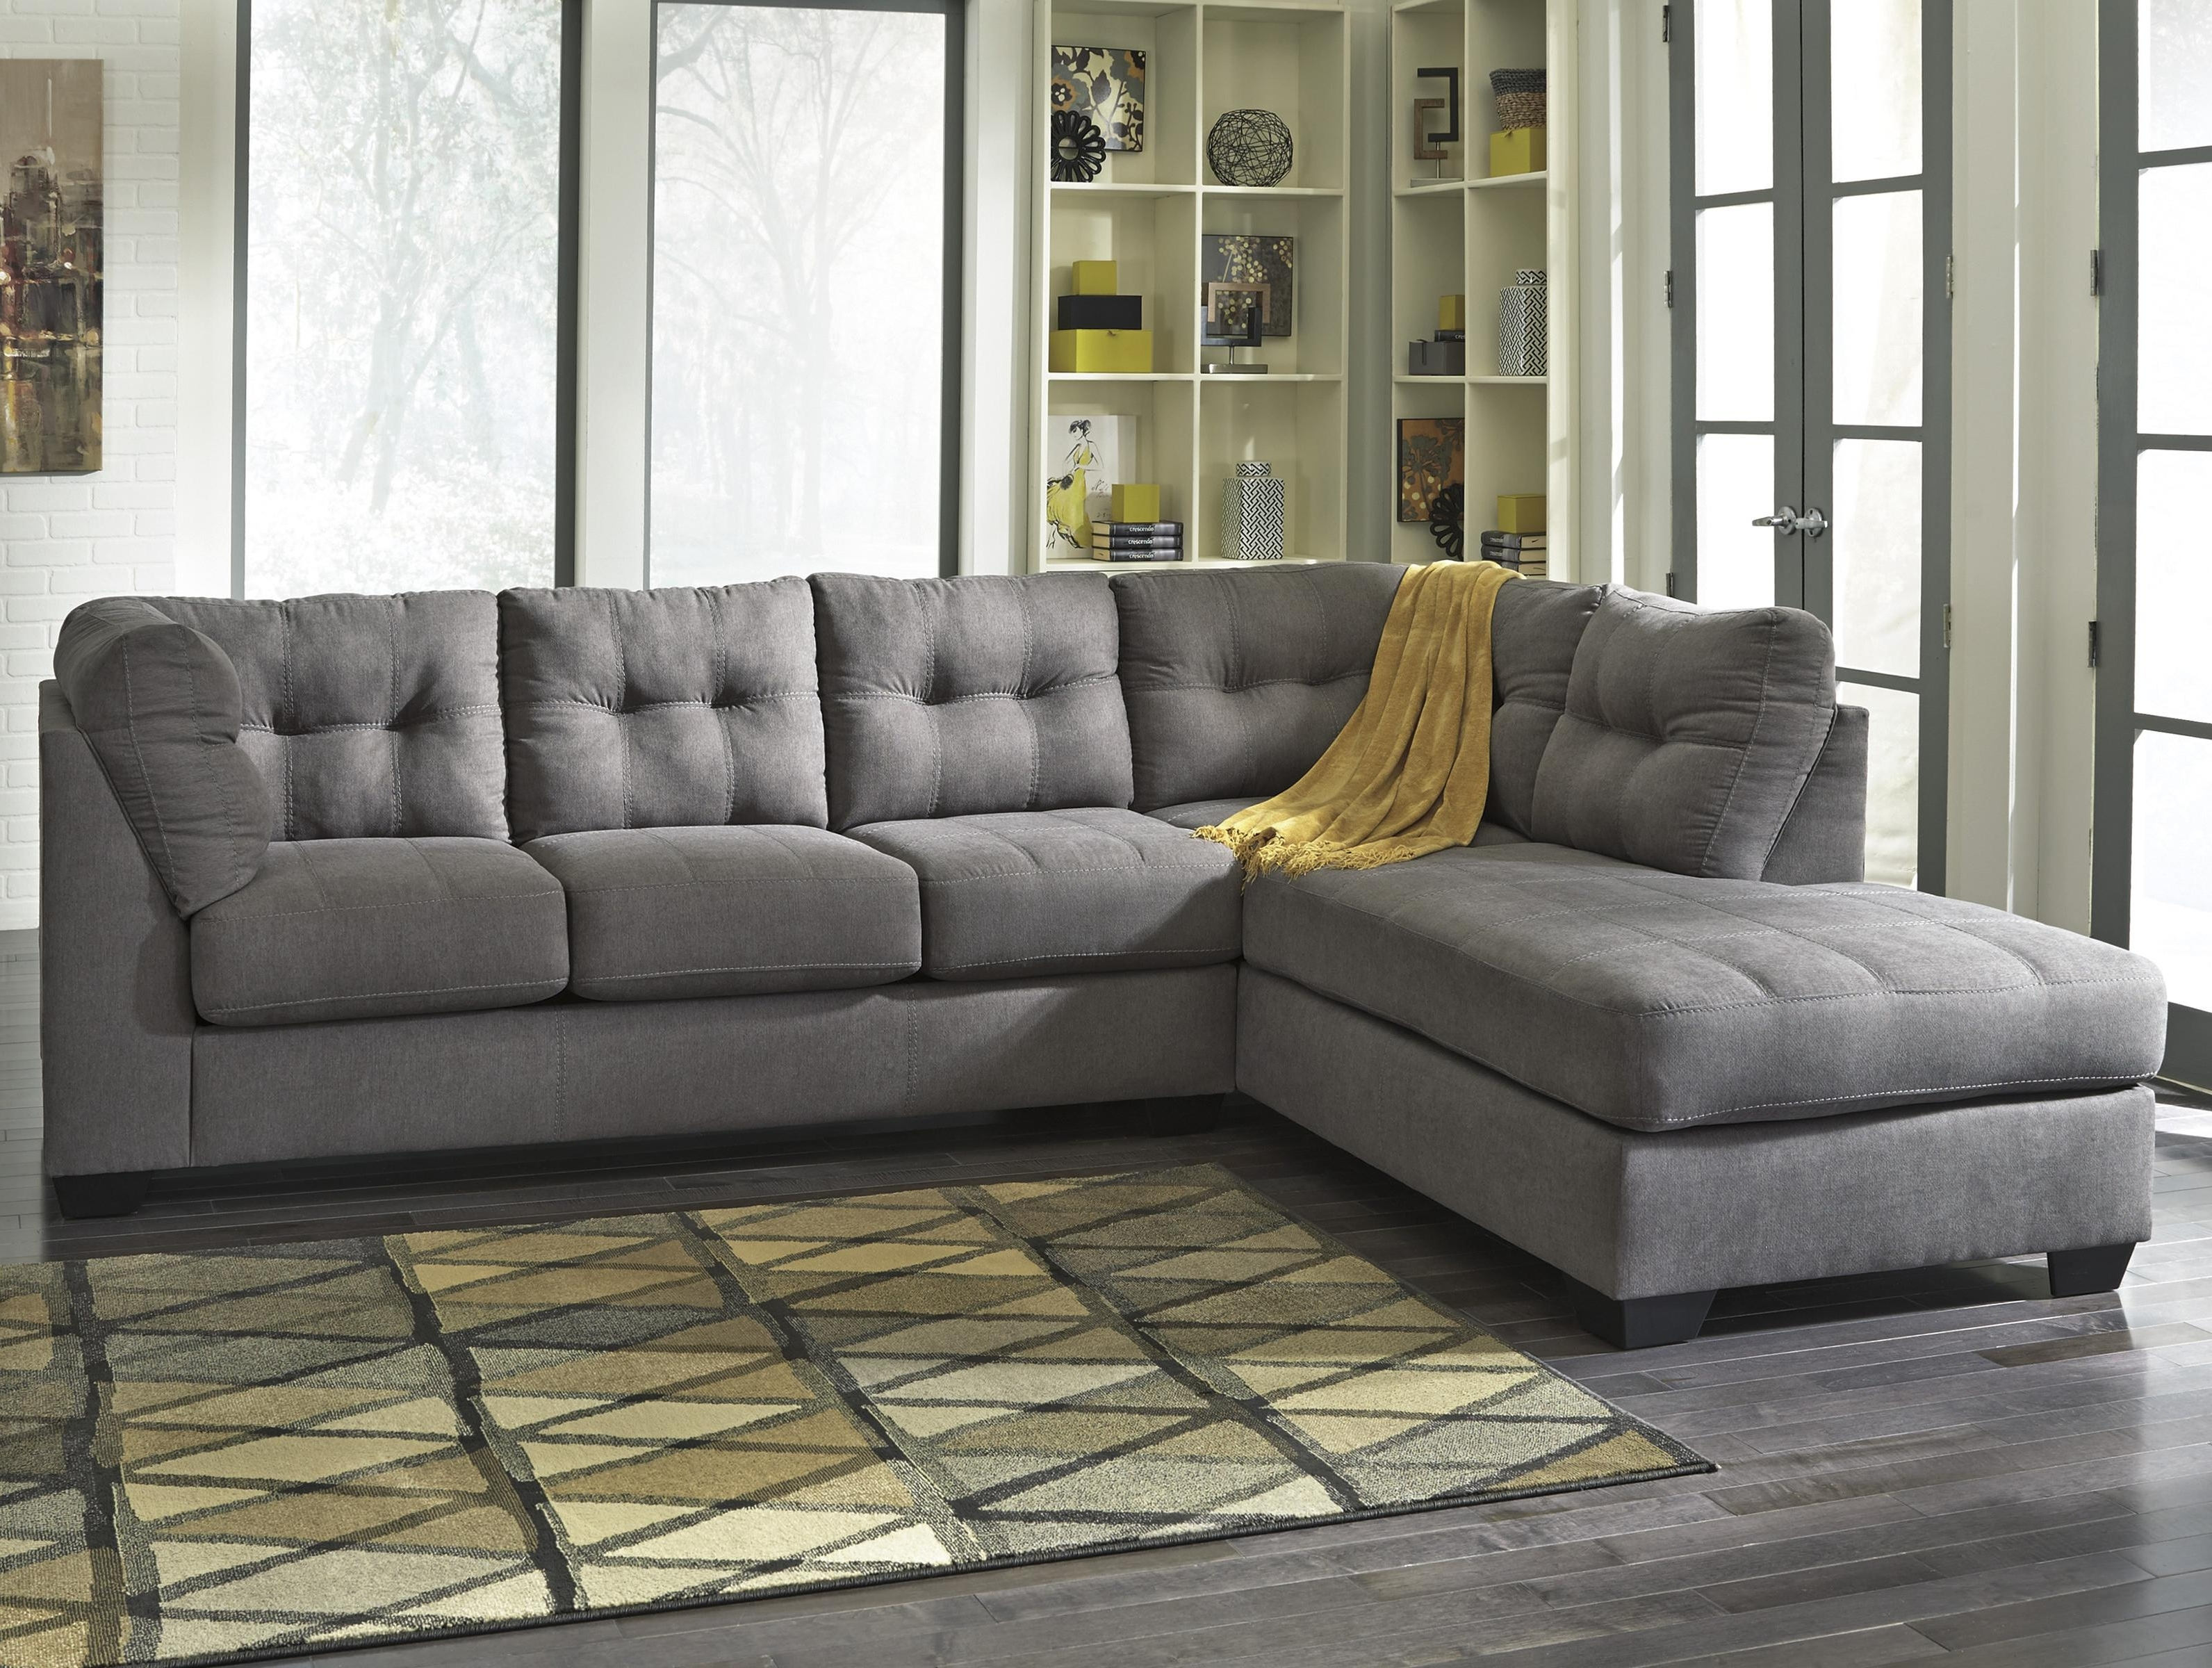 Memphis Tn Sectional Sofas Inside Most Up To Date Benchcraftashley Maier – Charcoal 2 Piece Sectional With Left (View 5 of 15)